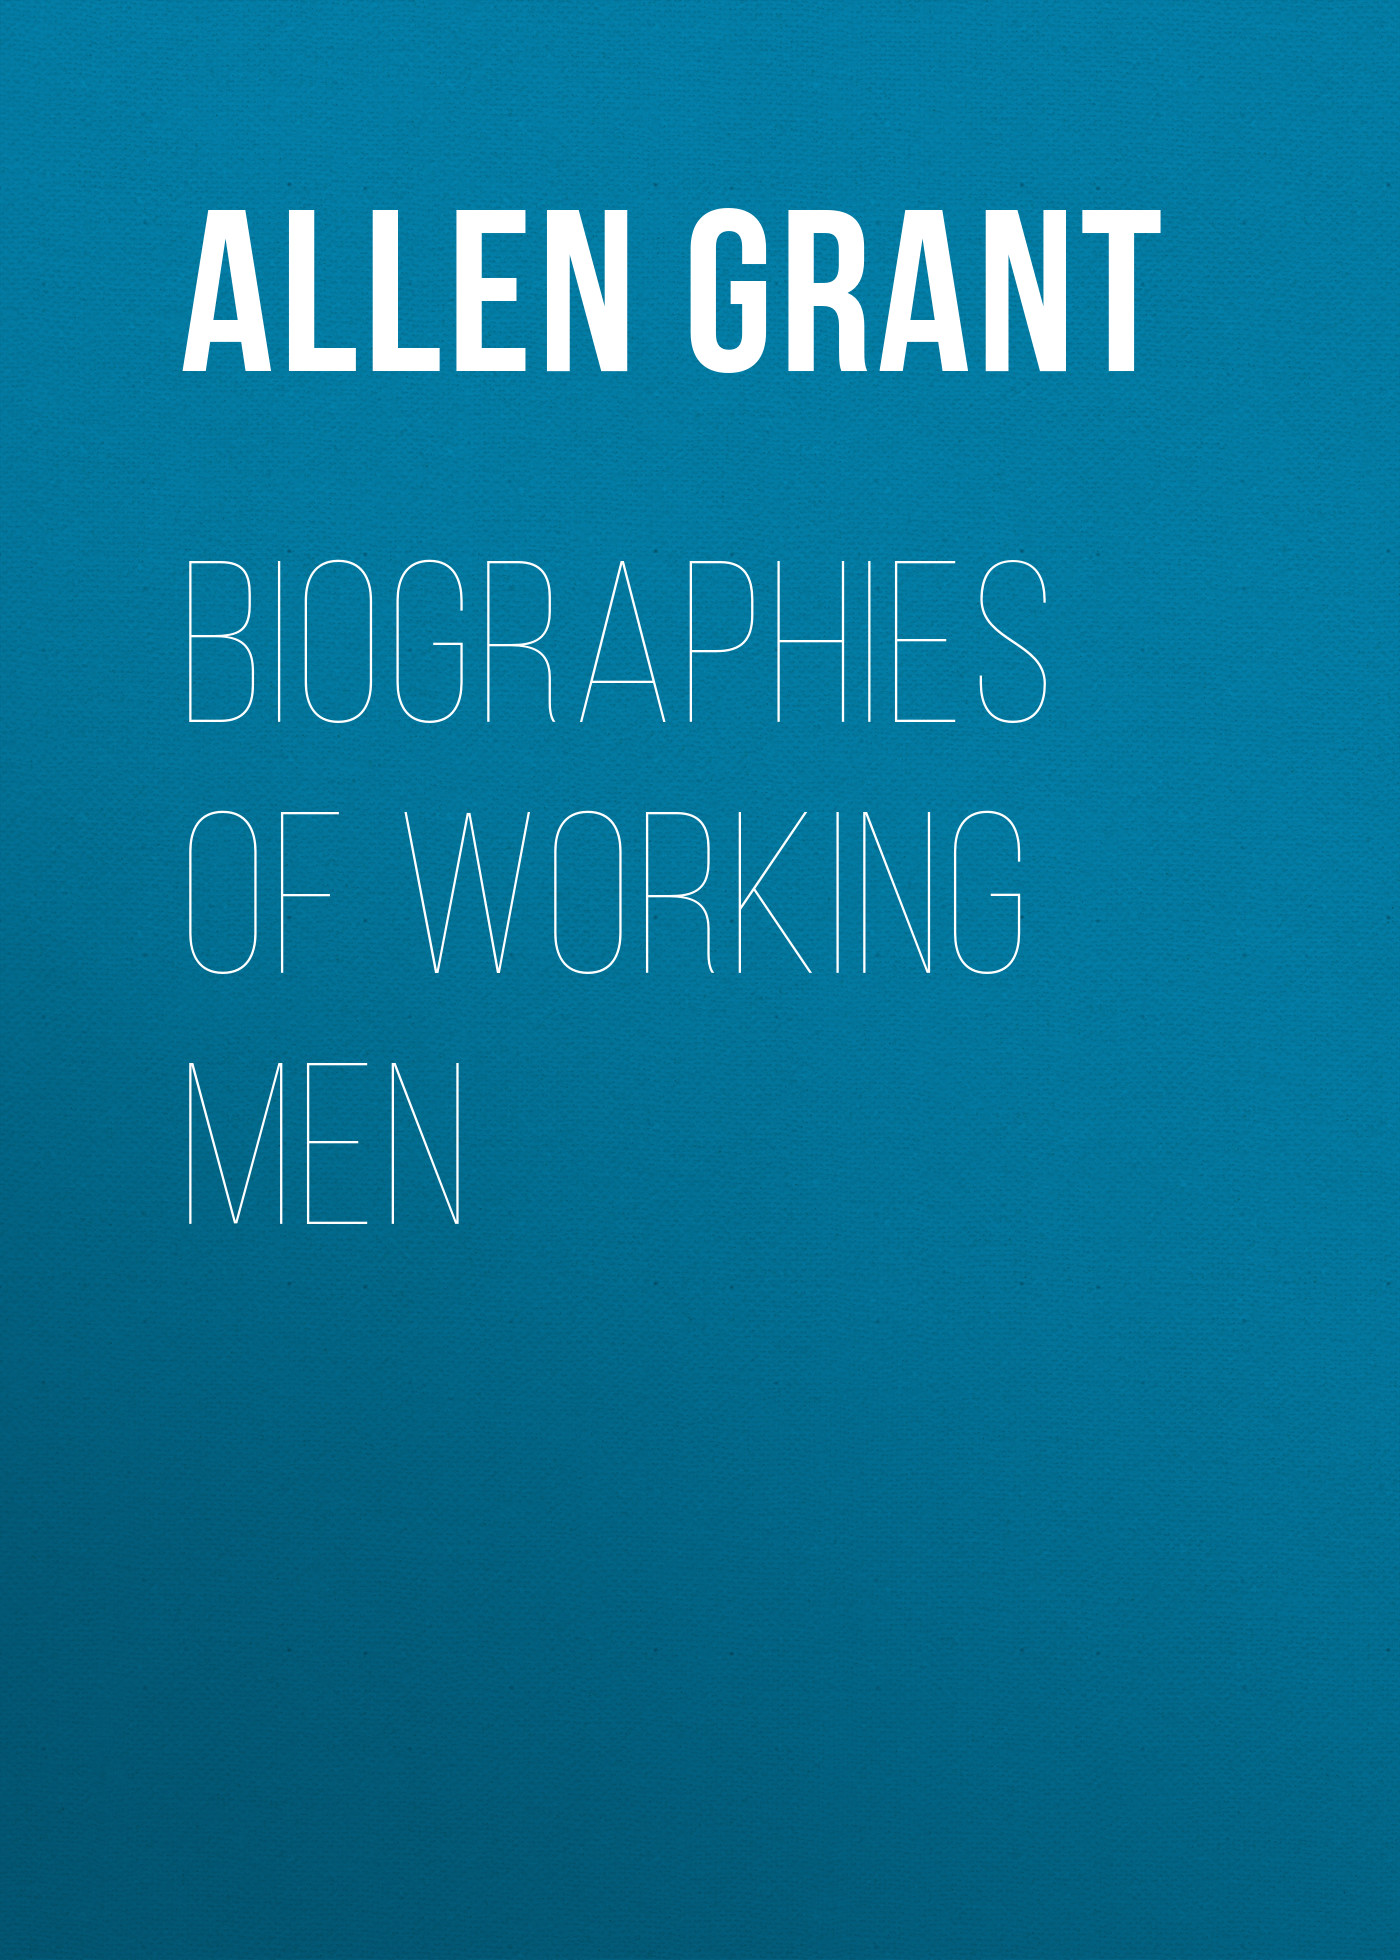 лучшая цена Allen Grant Biographies of Working Men